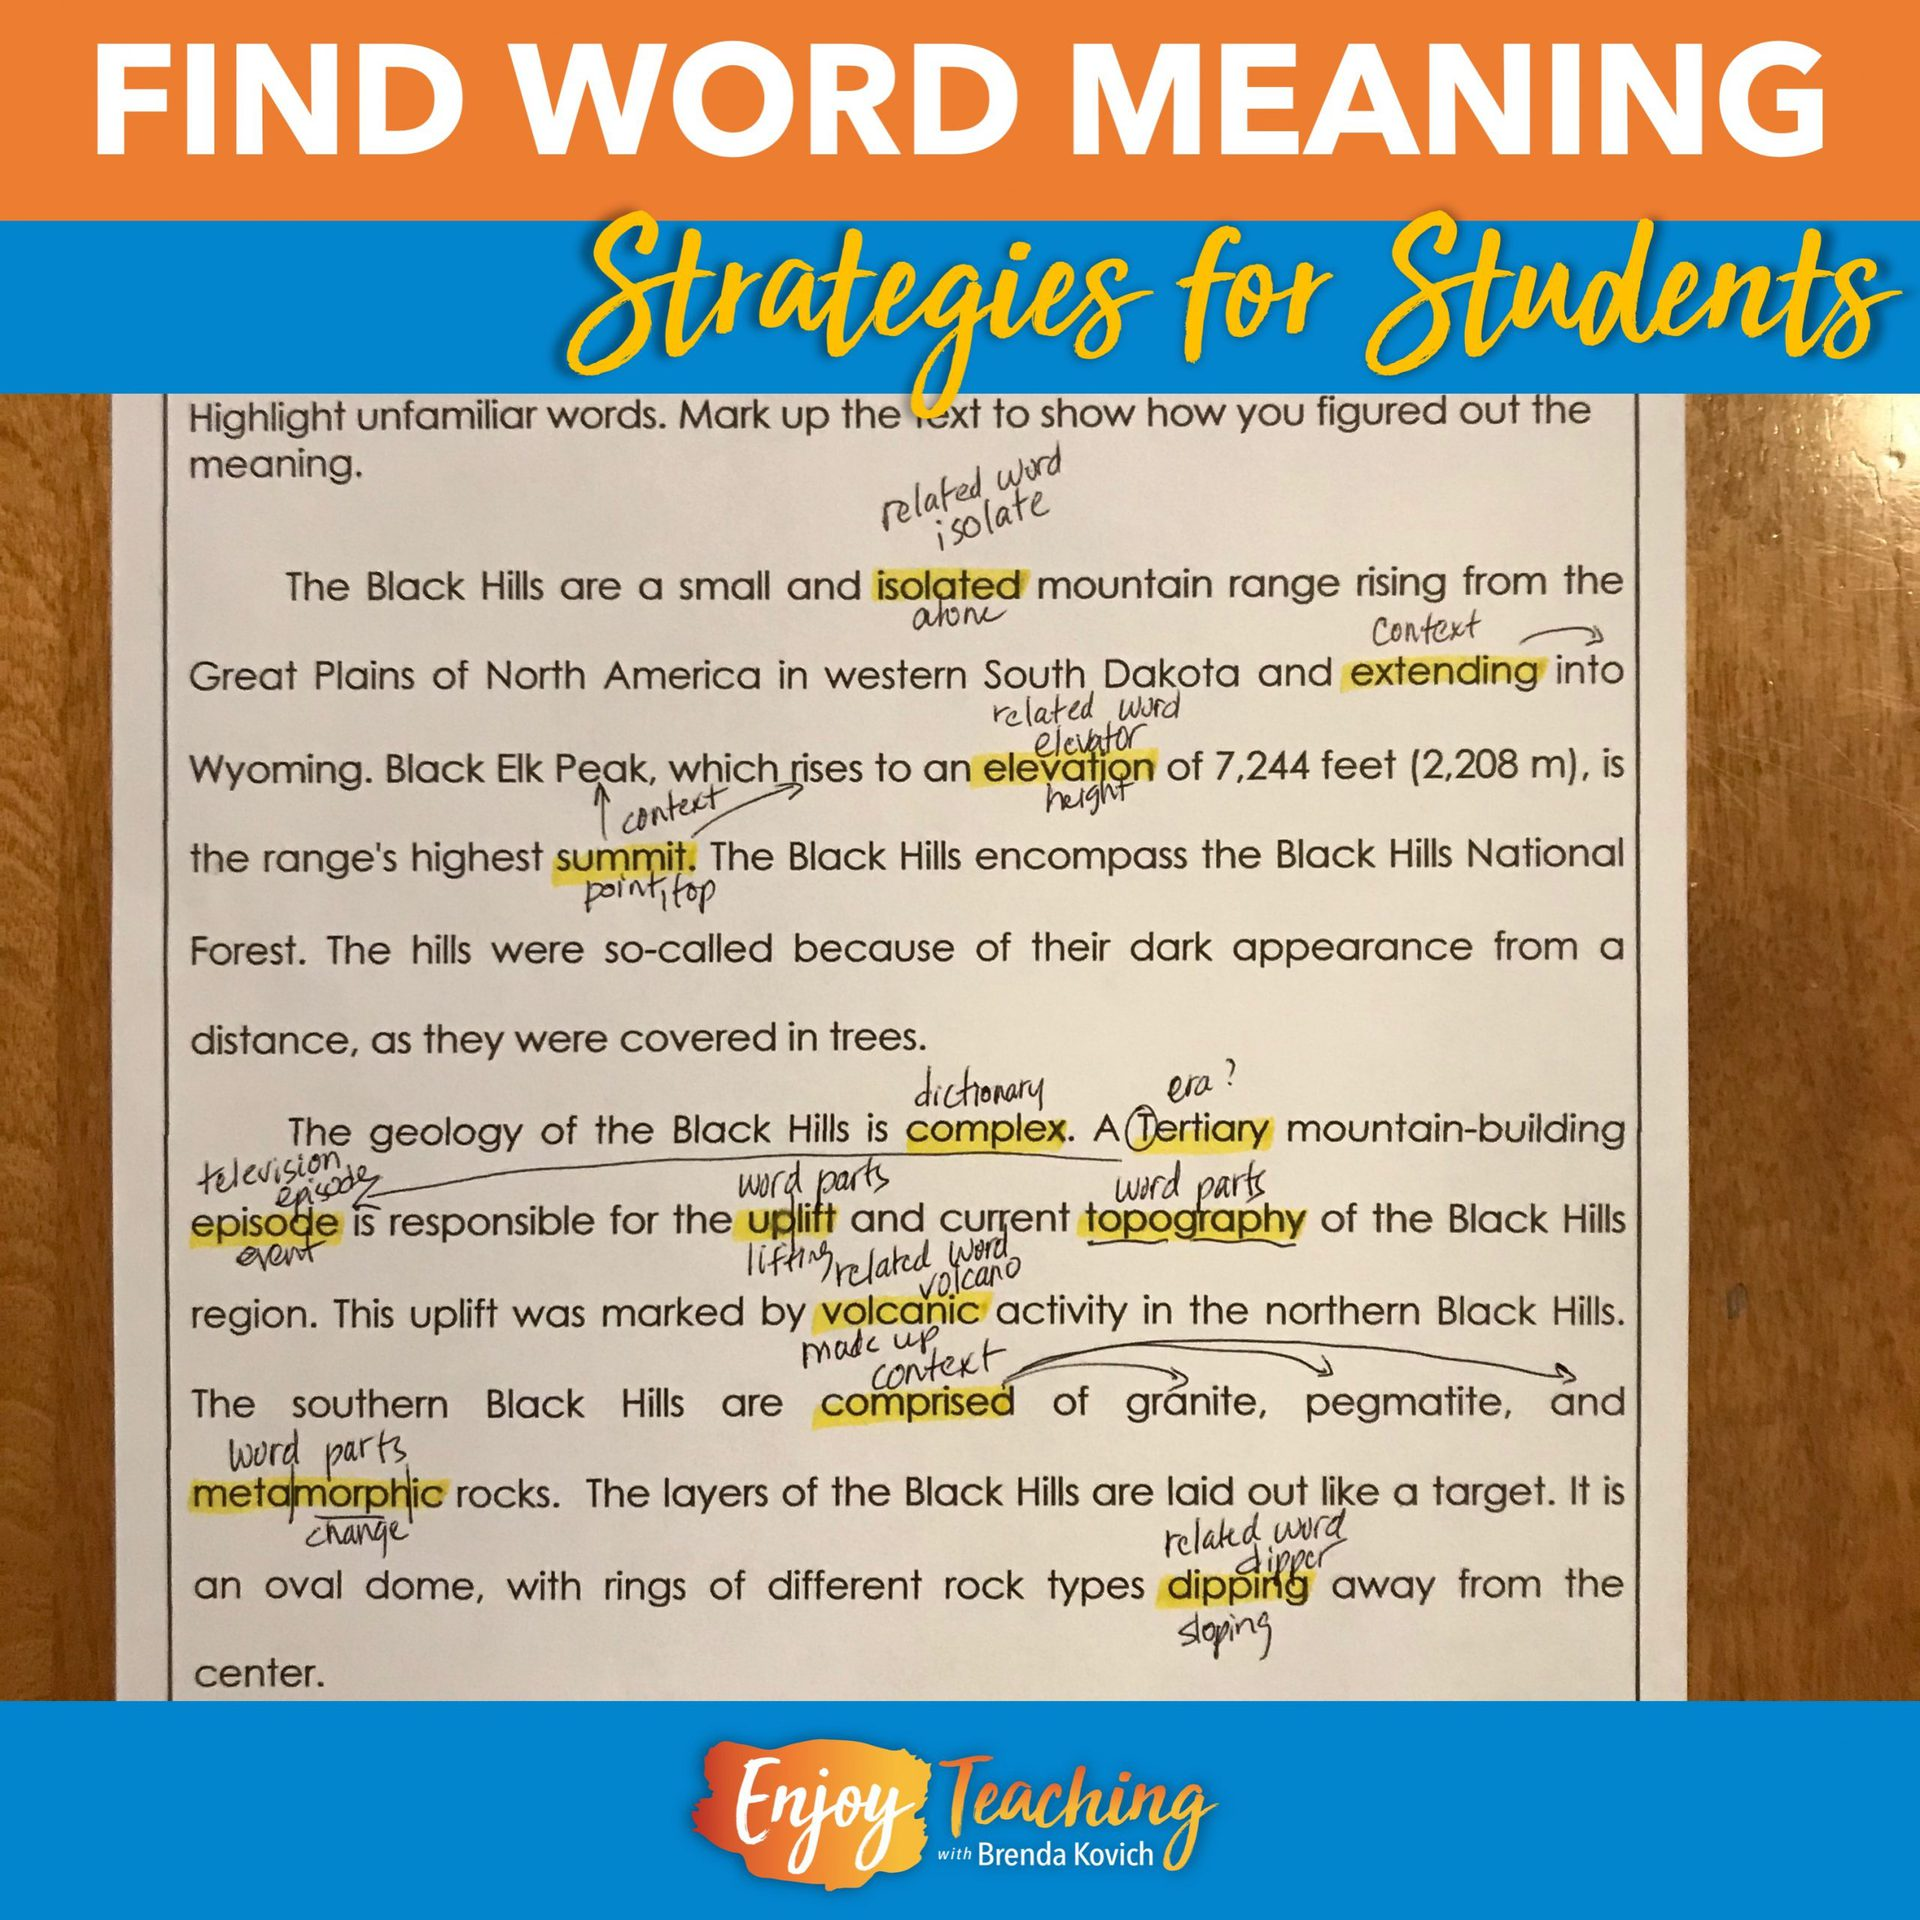 20 Ways to Teach Kids to Find Word Meaning in Context